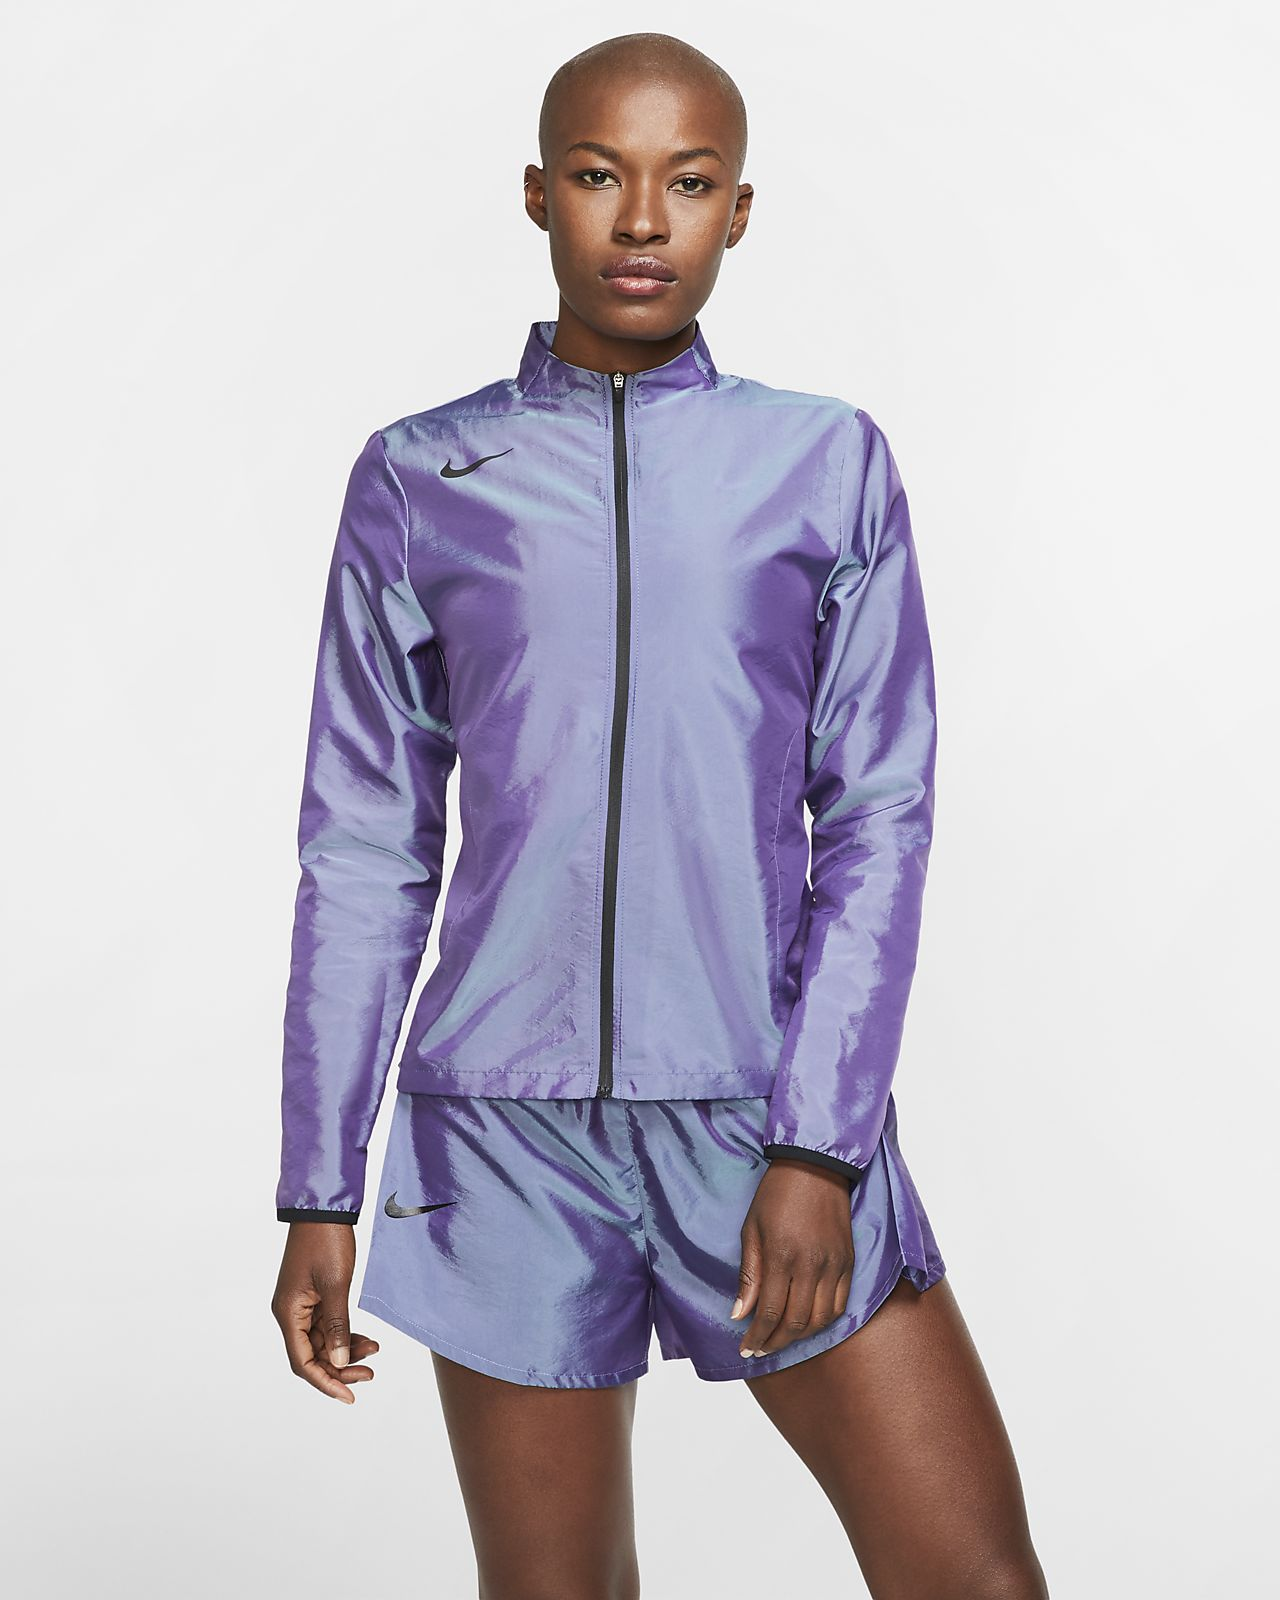 Nike Women's Full-Zip Running Jacket